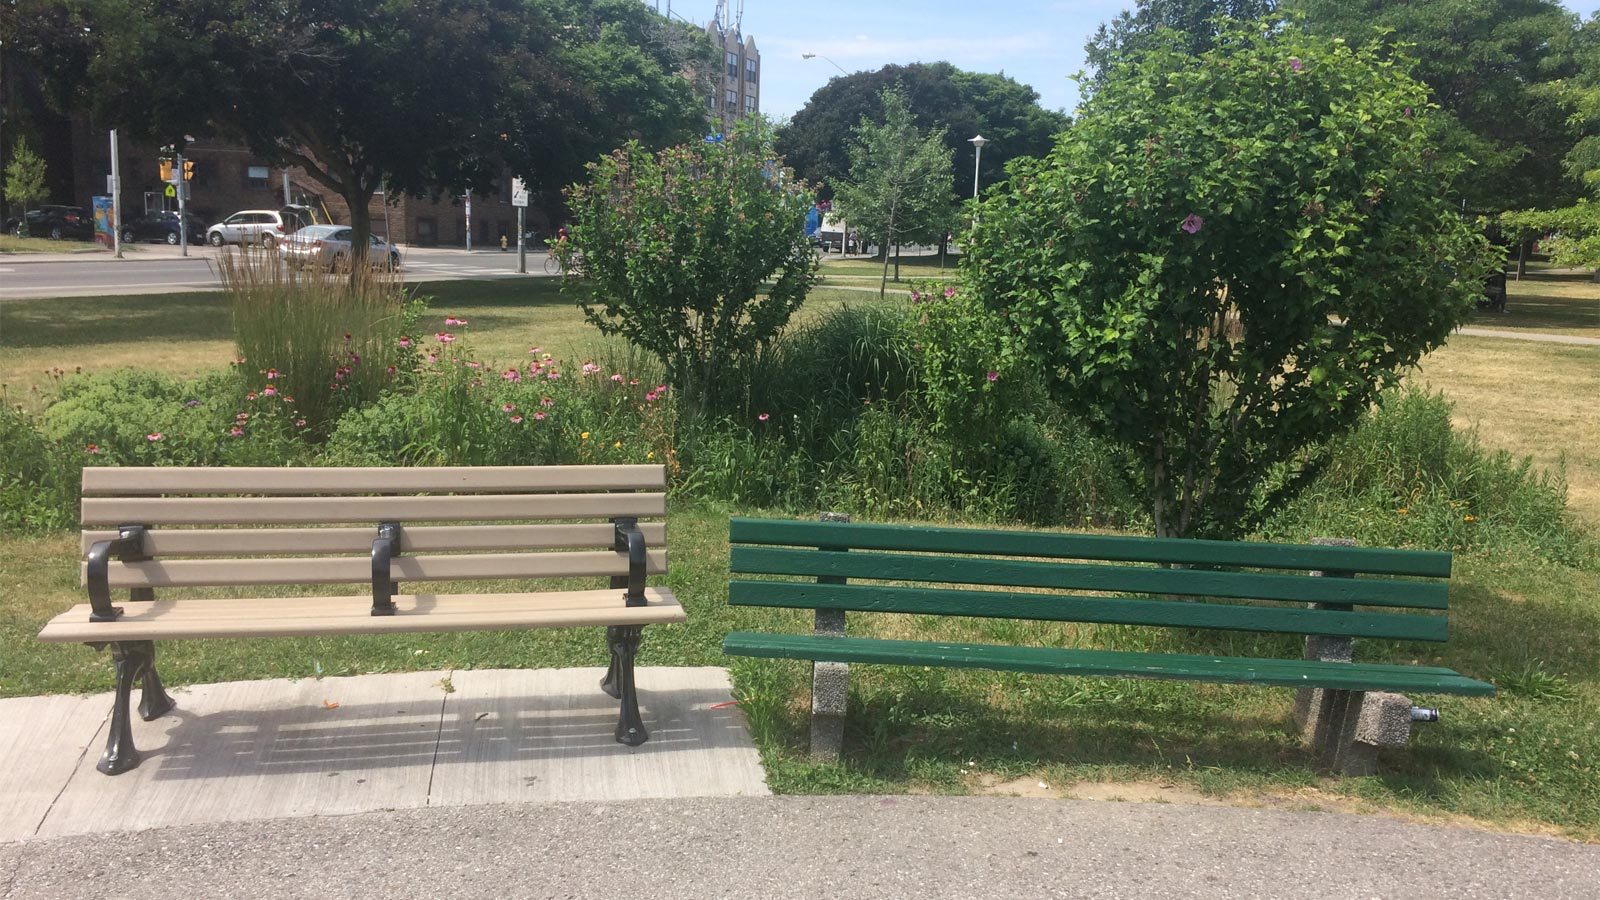 Two benches in a park, one on left has a seat armrest divider